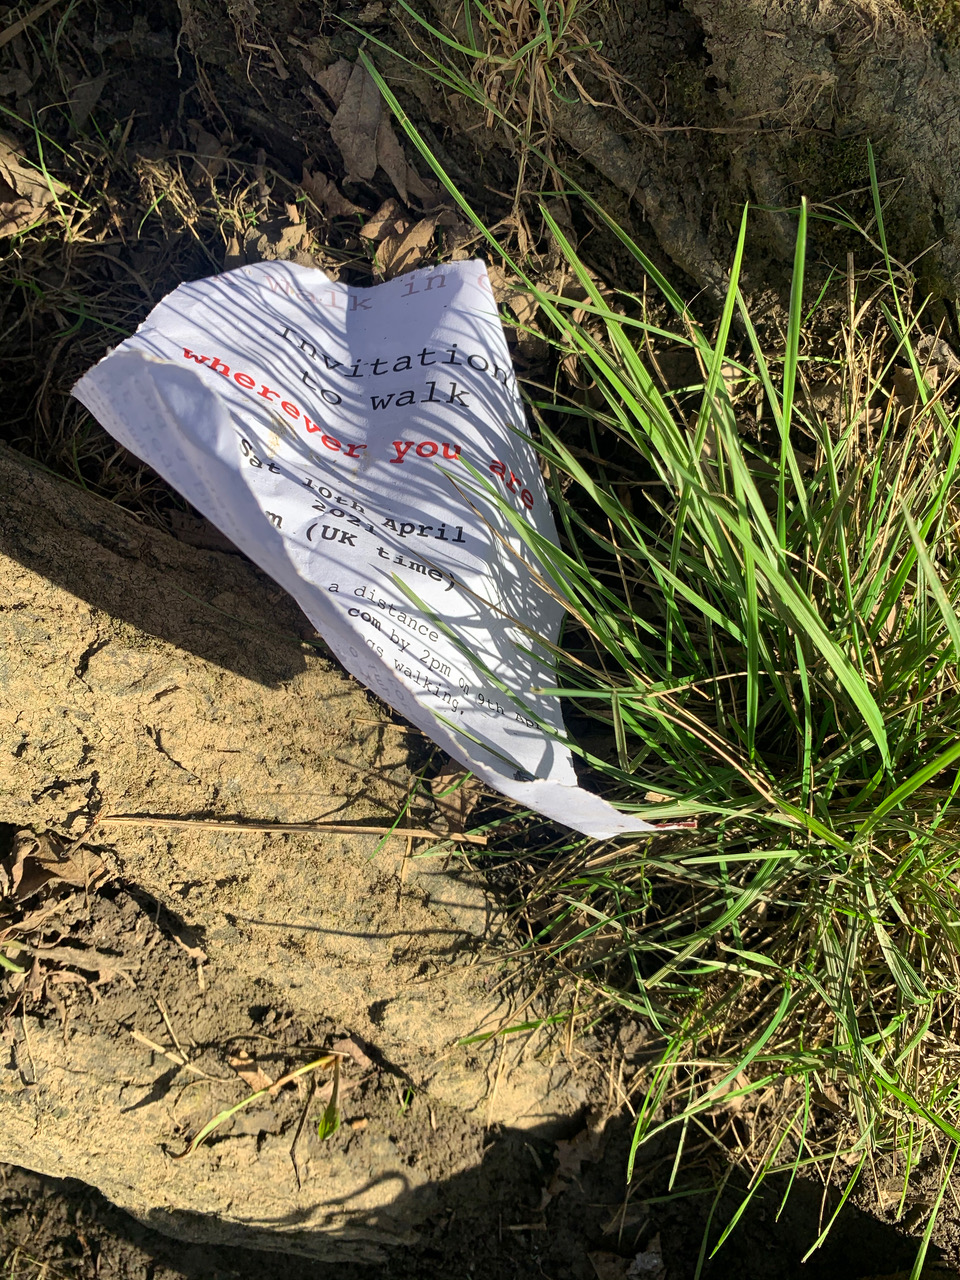 4 Crumpled printed paper on soil